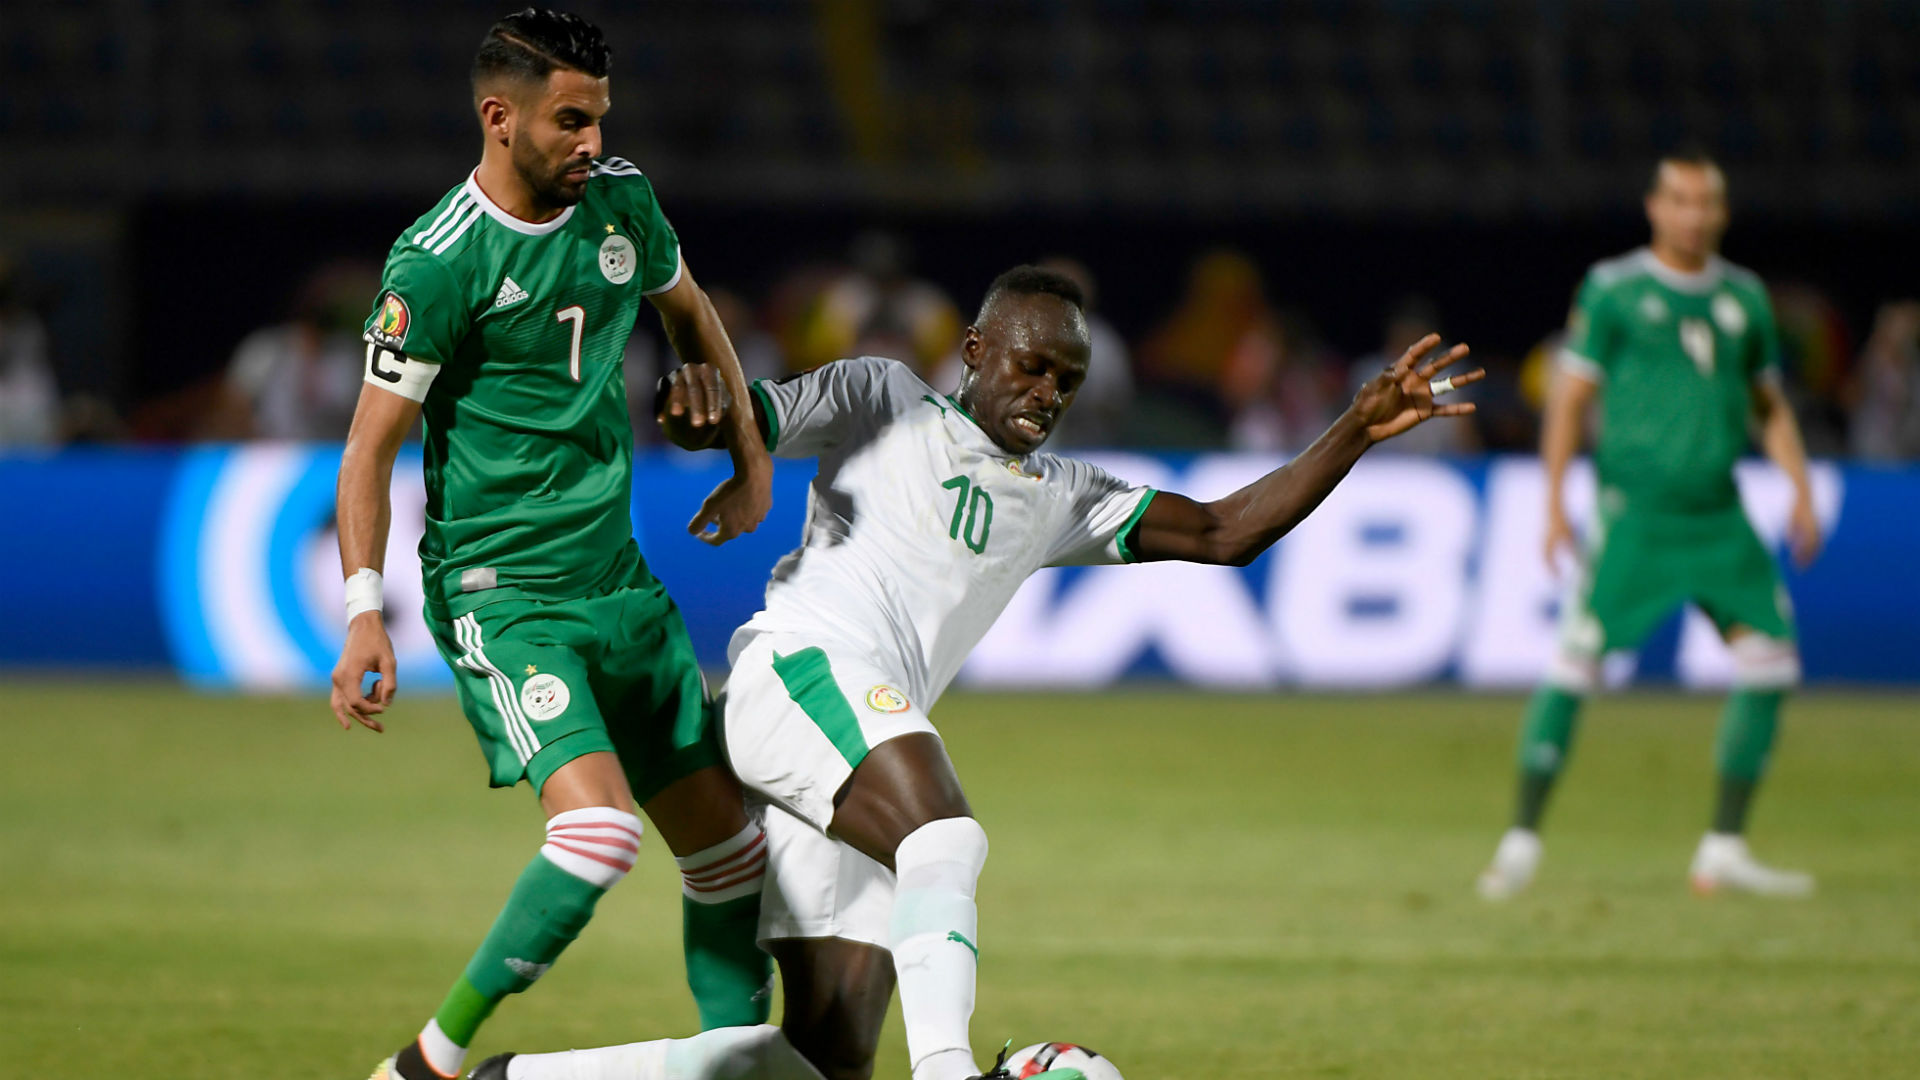 Manchester City's Mahrez celebrates Mane and gives reason for missing Caf Awards